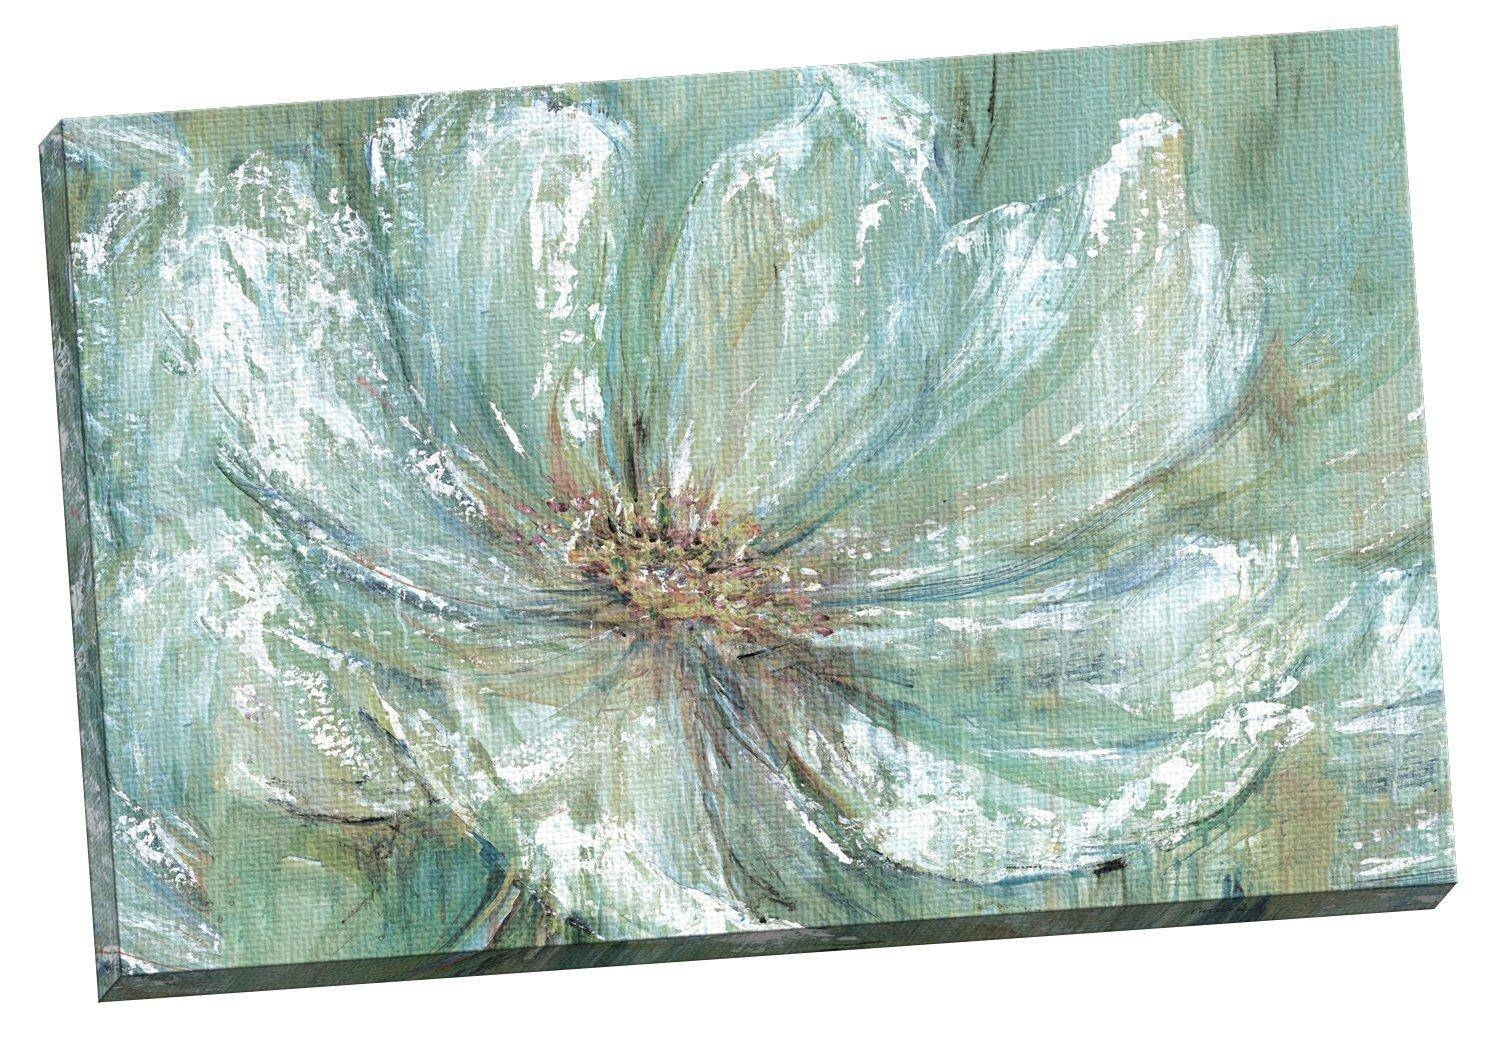 Appealing Teal And Gray Canvas Art Split Canvas Wall Art Wall For Best And Newest Large Teal Wall Art (View 3 of 20)